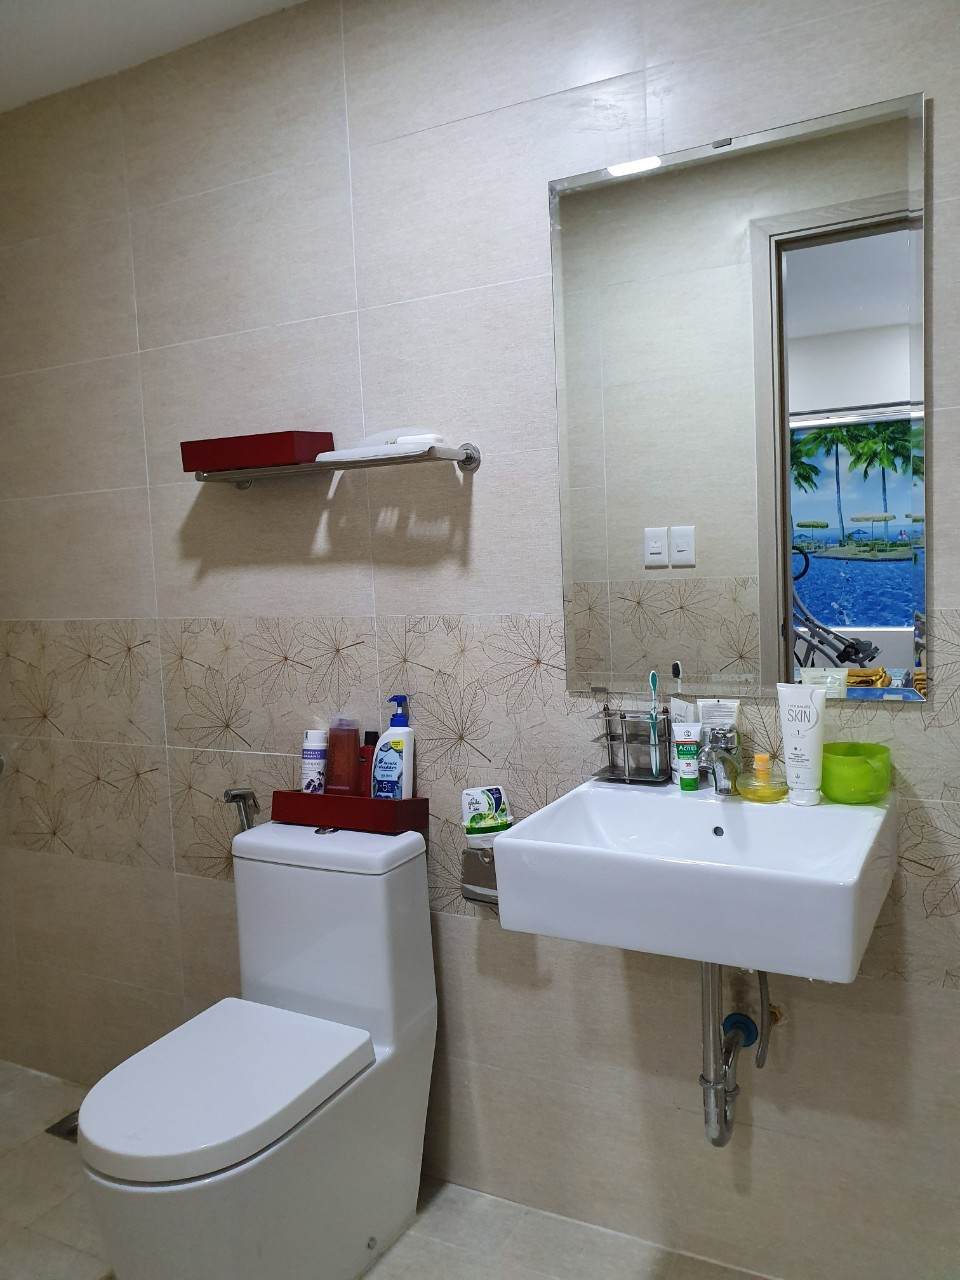 sale Viva Riverside - 3 bedroom - 2 wc